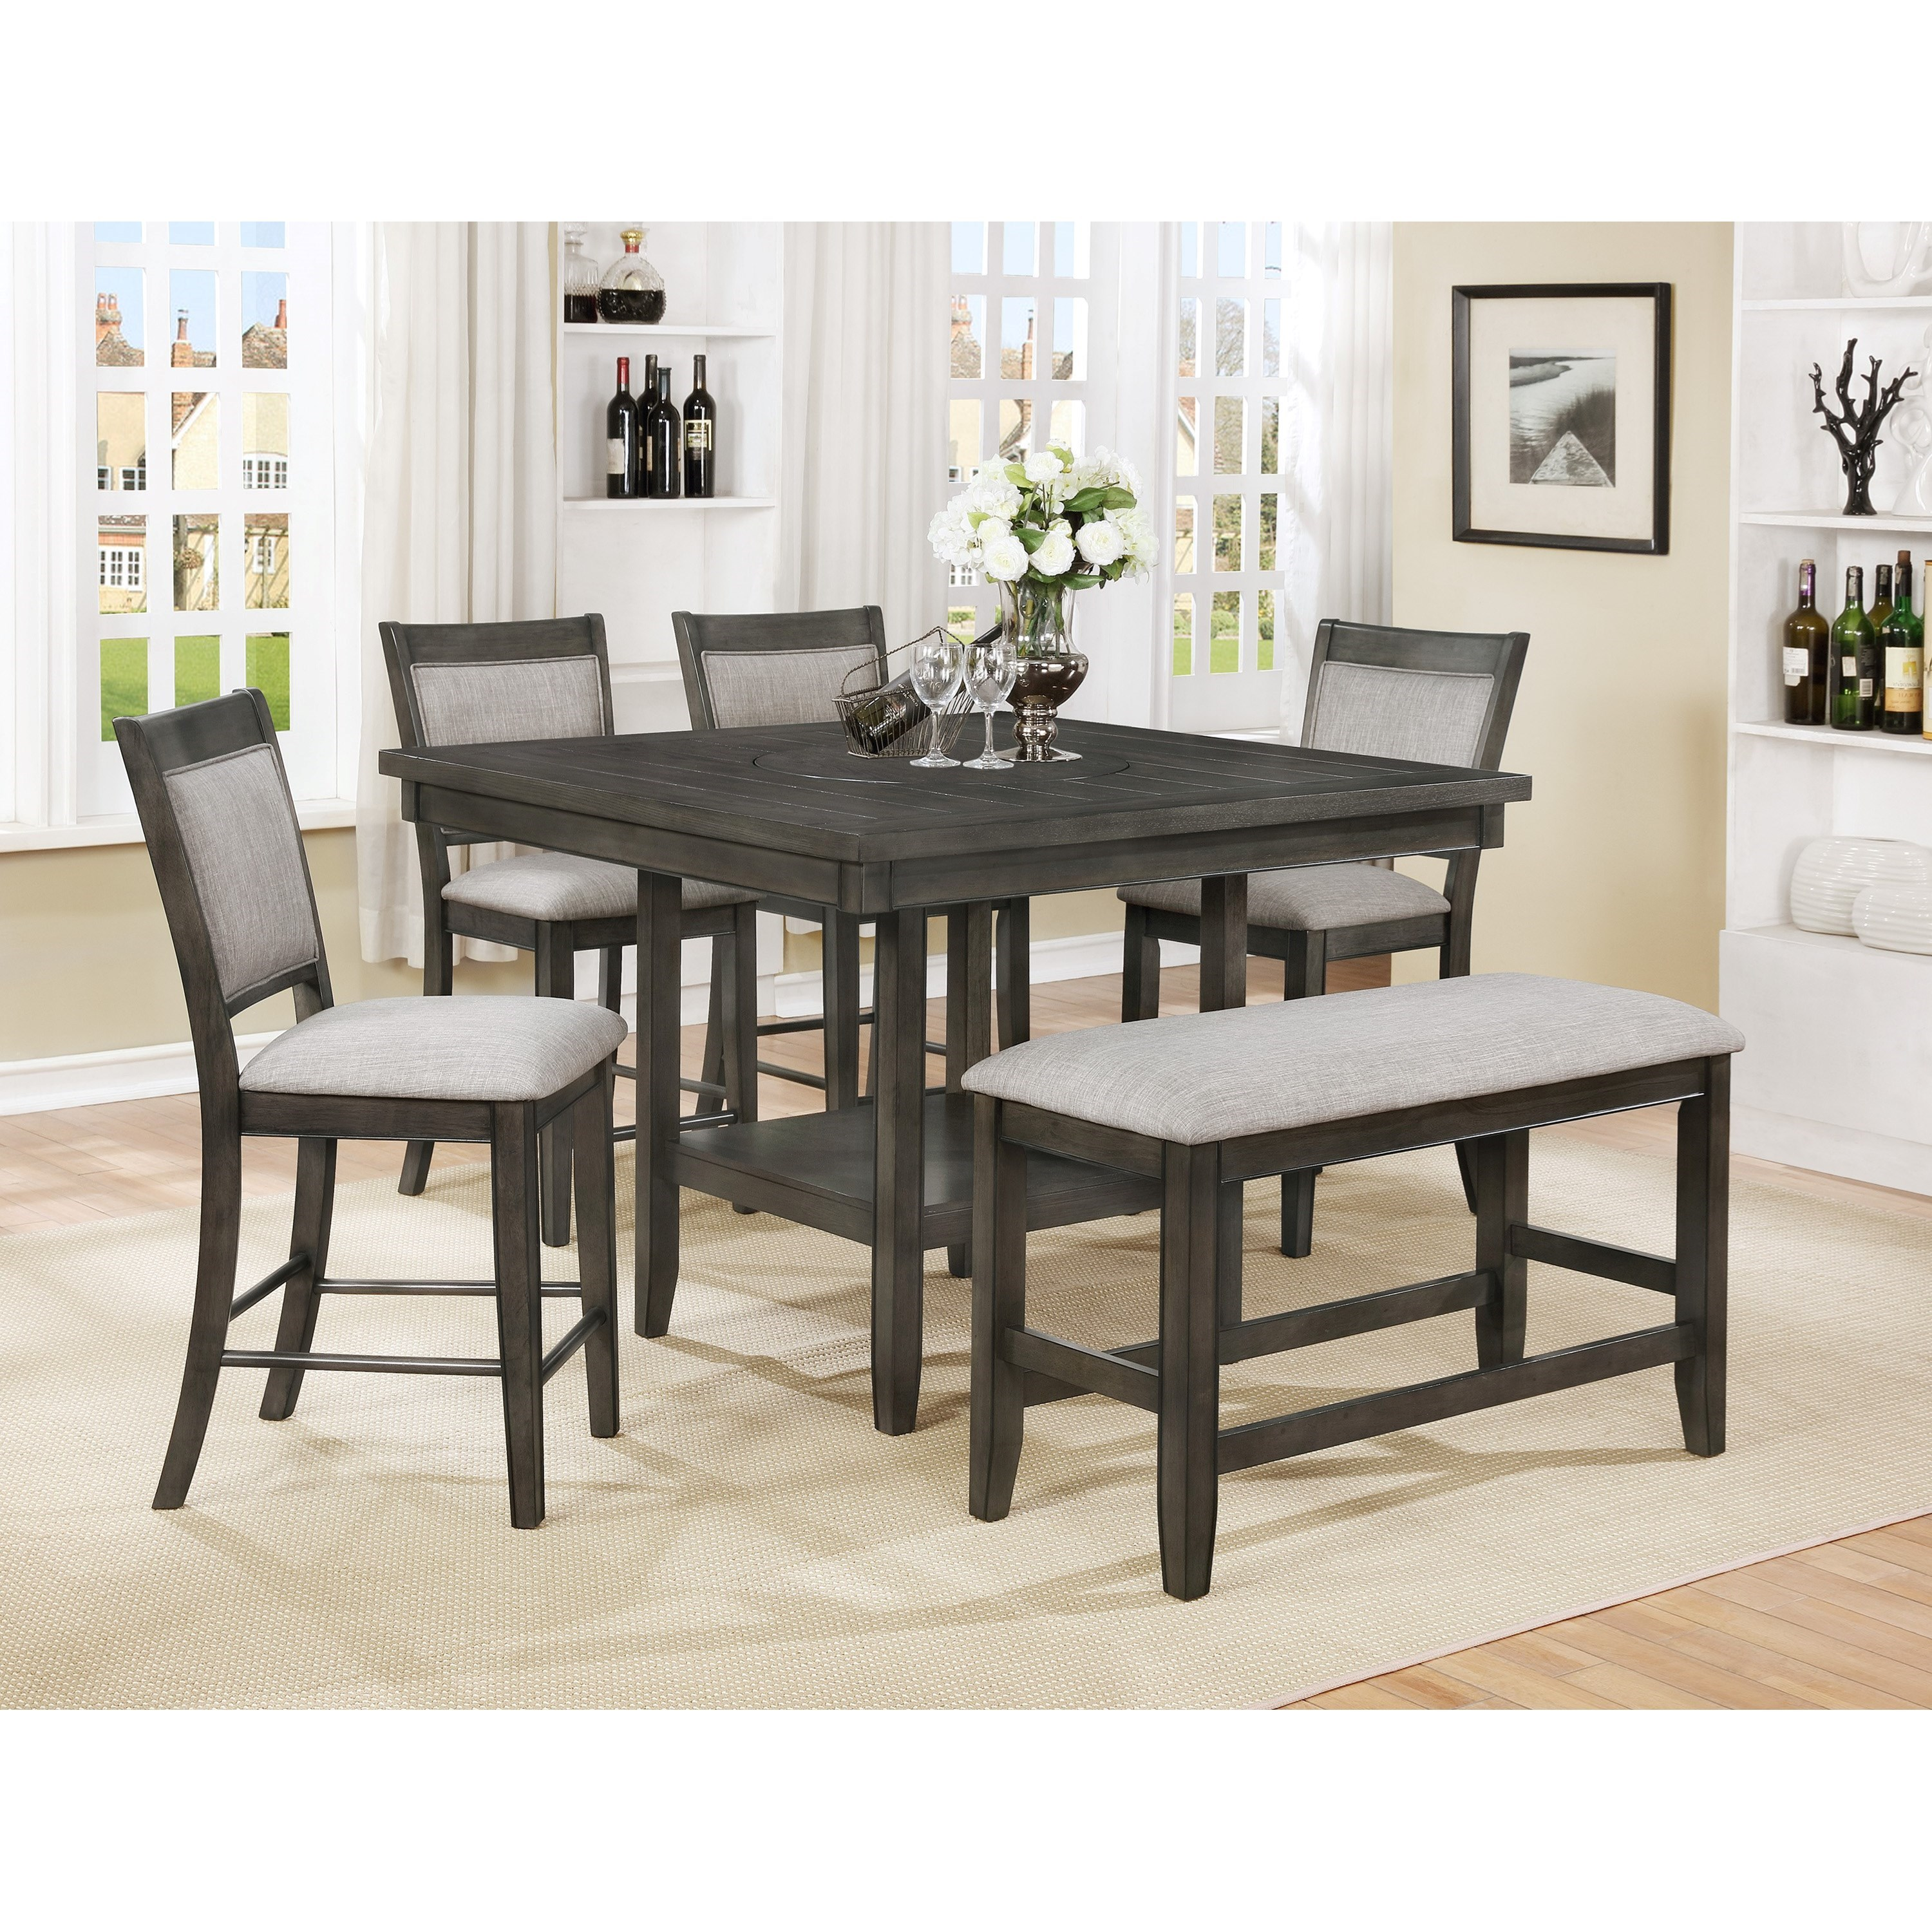 Bolton 6-Pc Counter Height Table, Chair & Bench Set at Rotmans